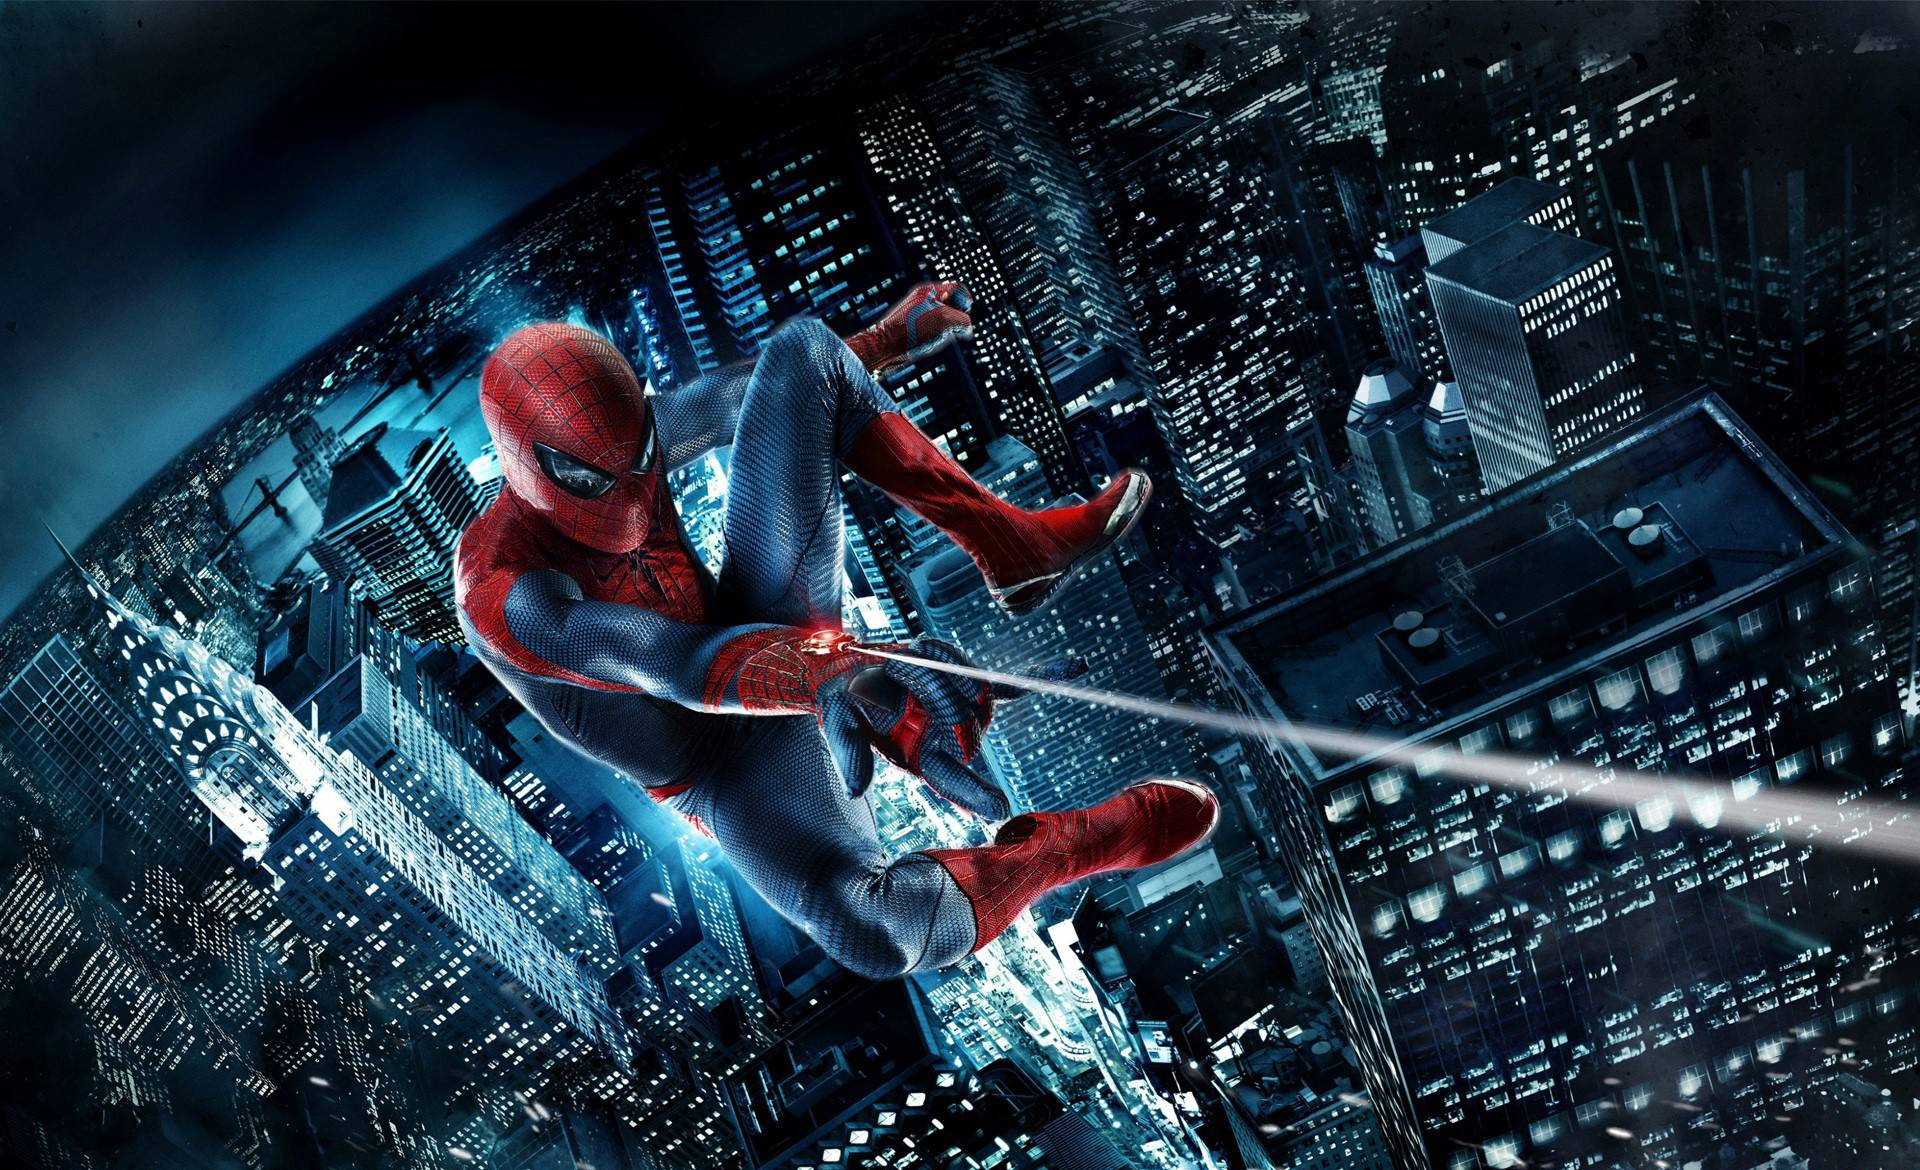 Spider Man Pc Wallpapers Top Free Spider Man Pc Backgrounds Wallpaperaccess